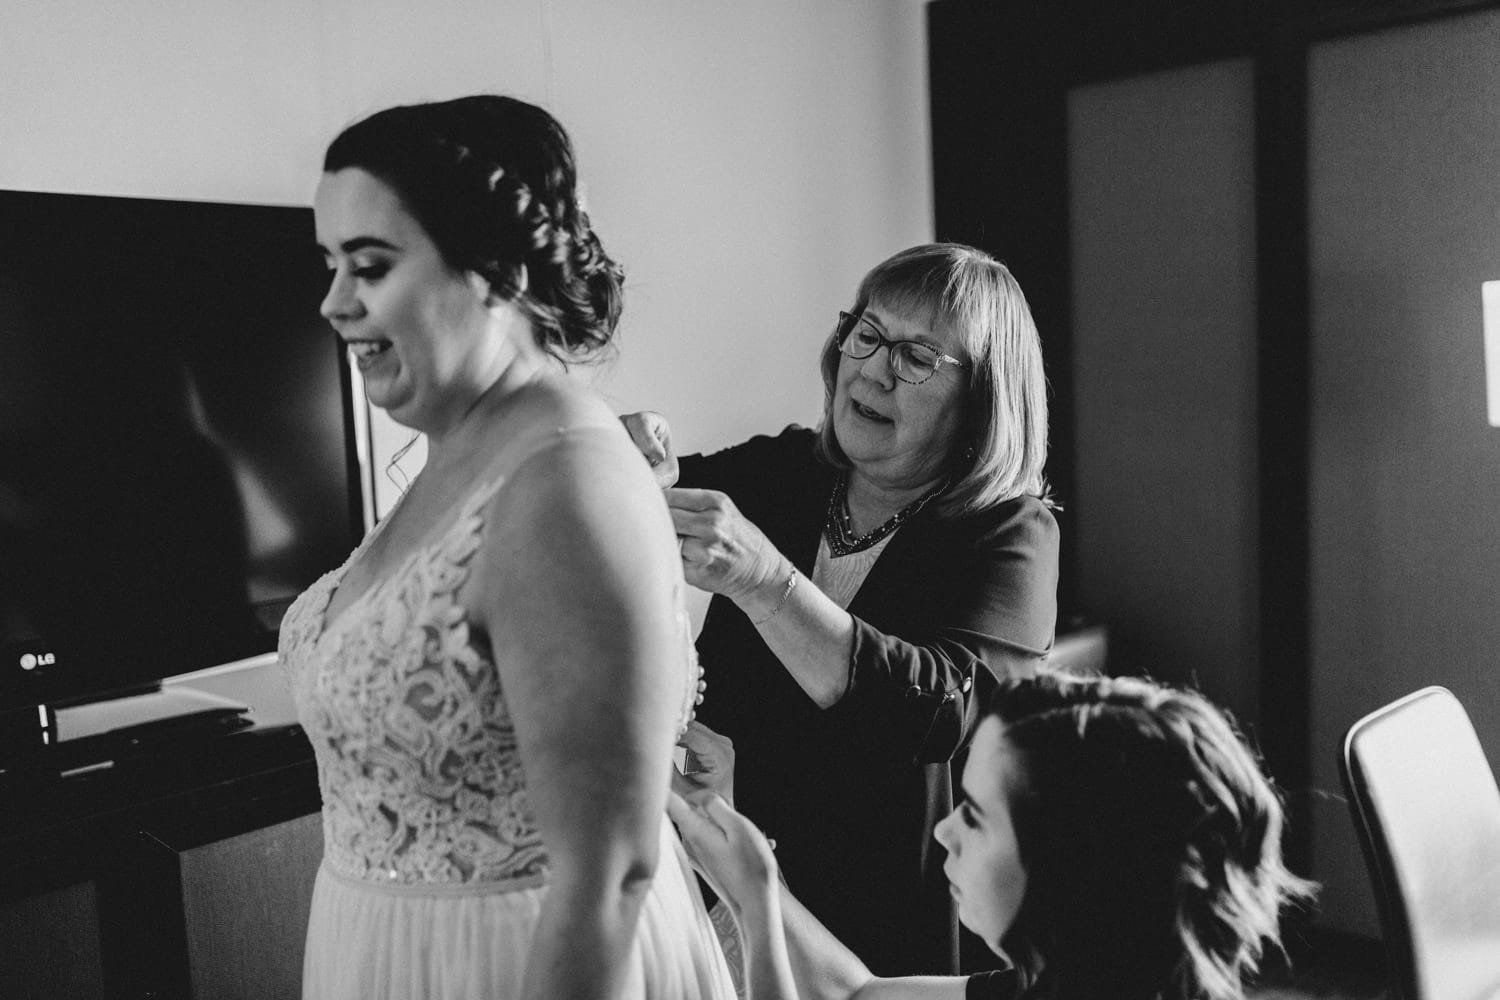 brides mom and sister help her into dress